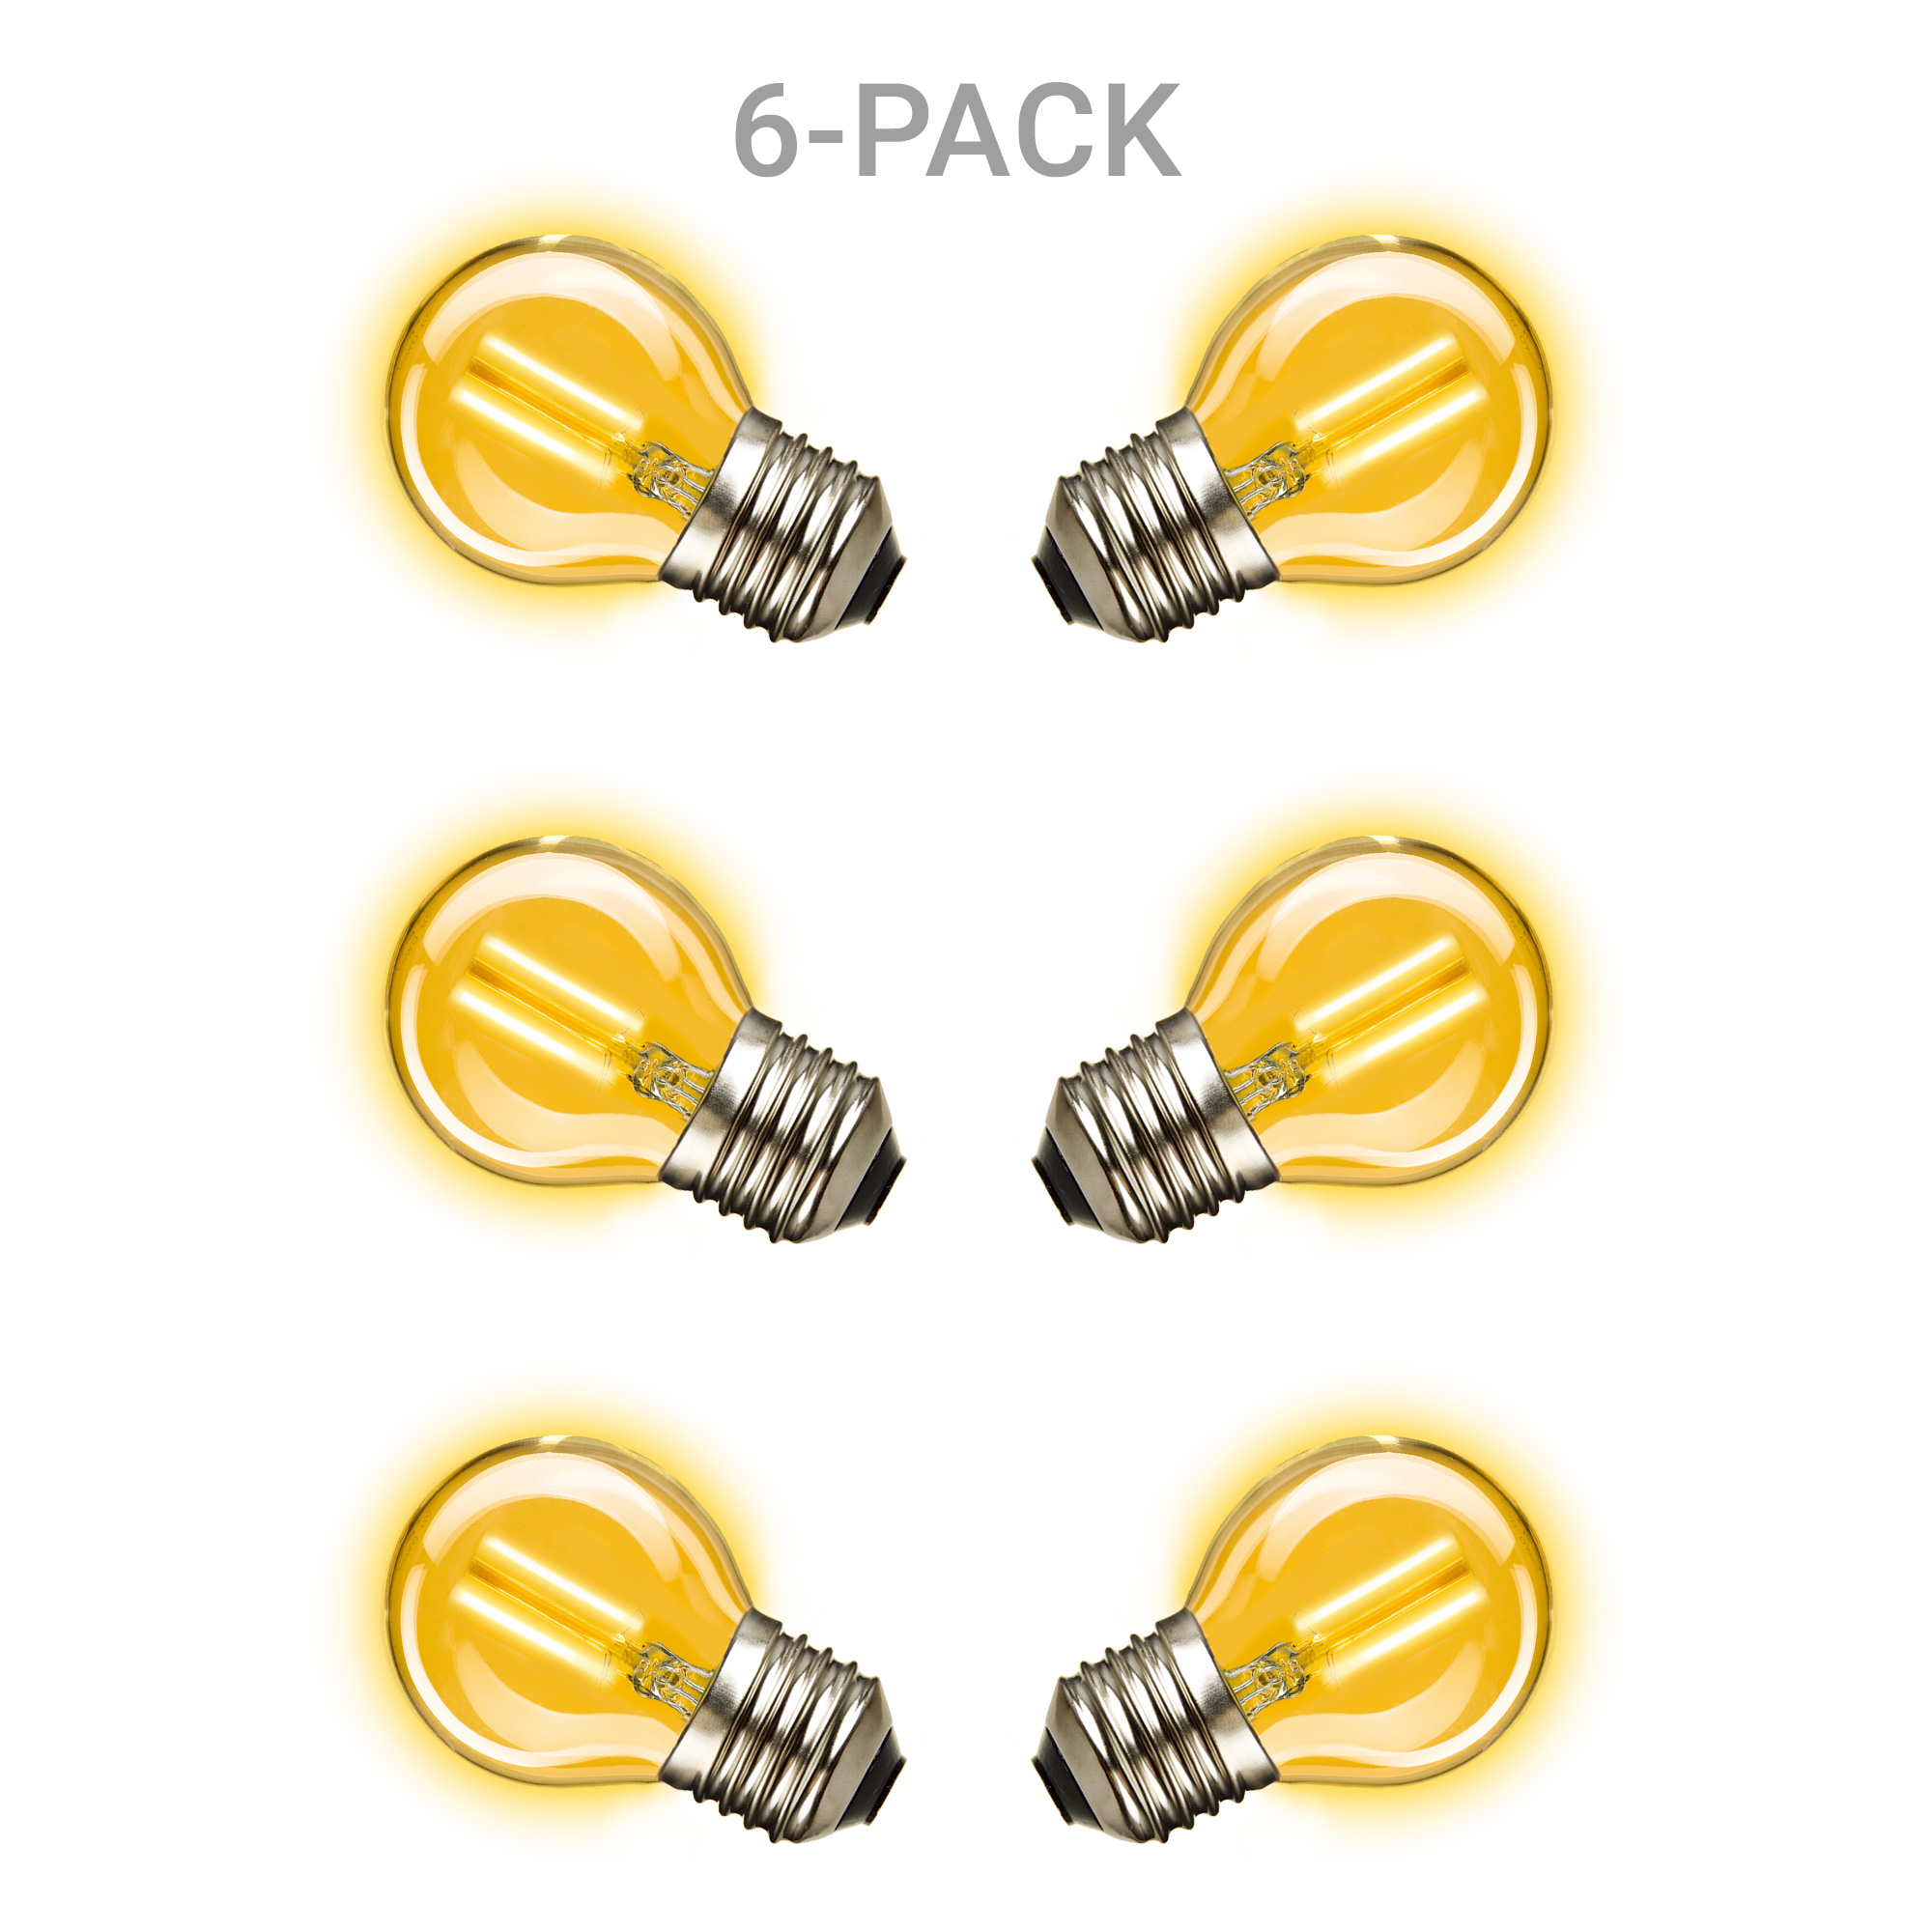 6 pack Mini Gold Ledlamp